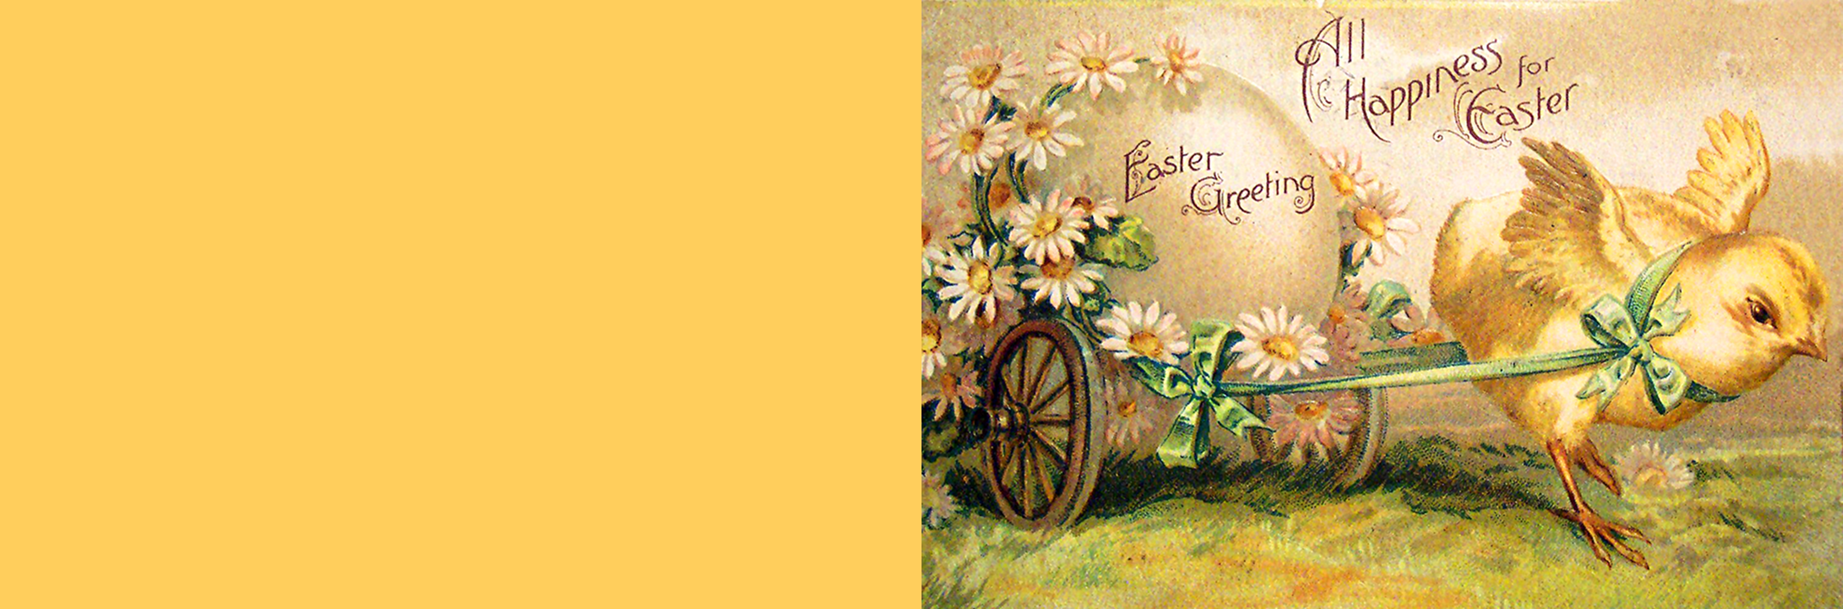 Old vintage Easter greeting card with yellow chicken pulling a cart with a large egg.